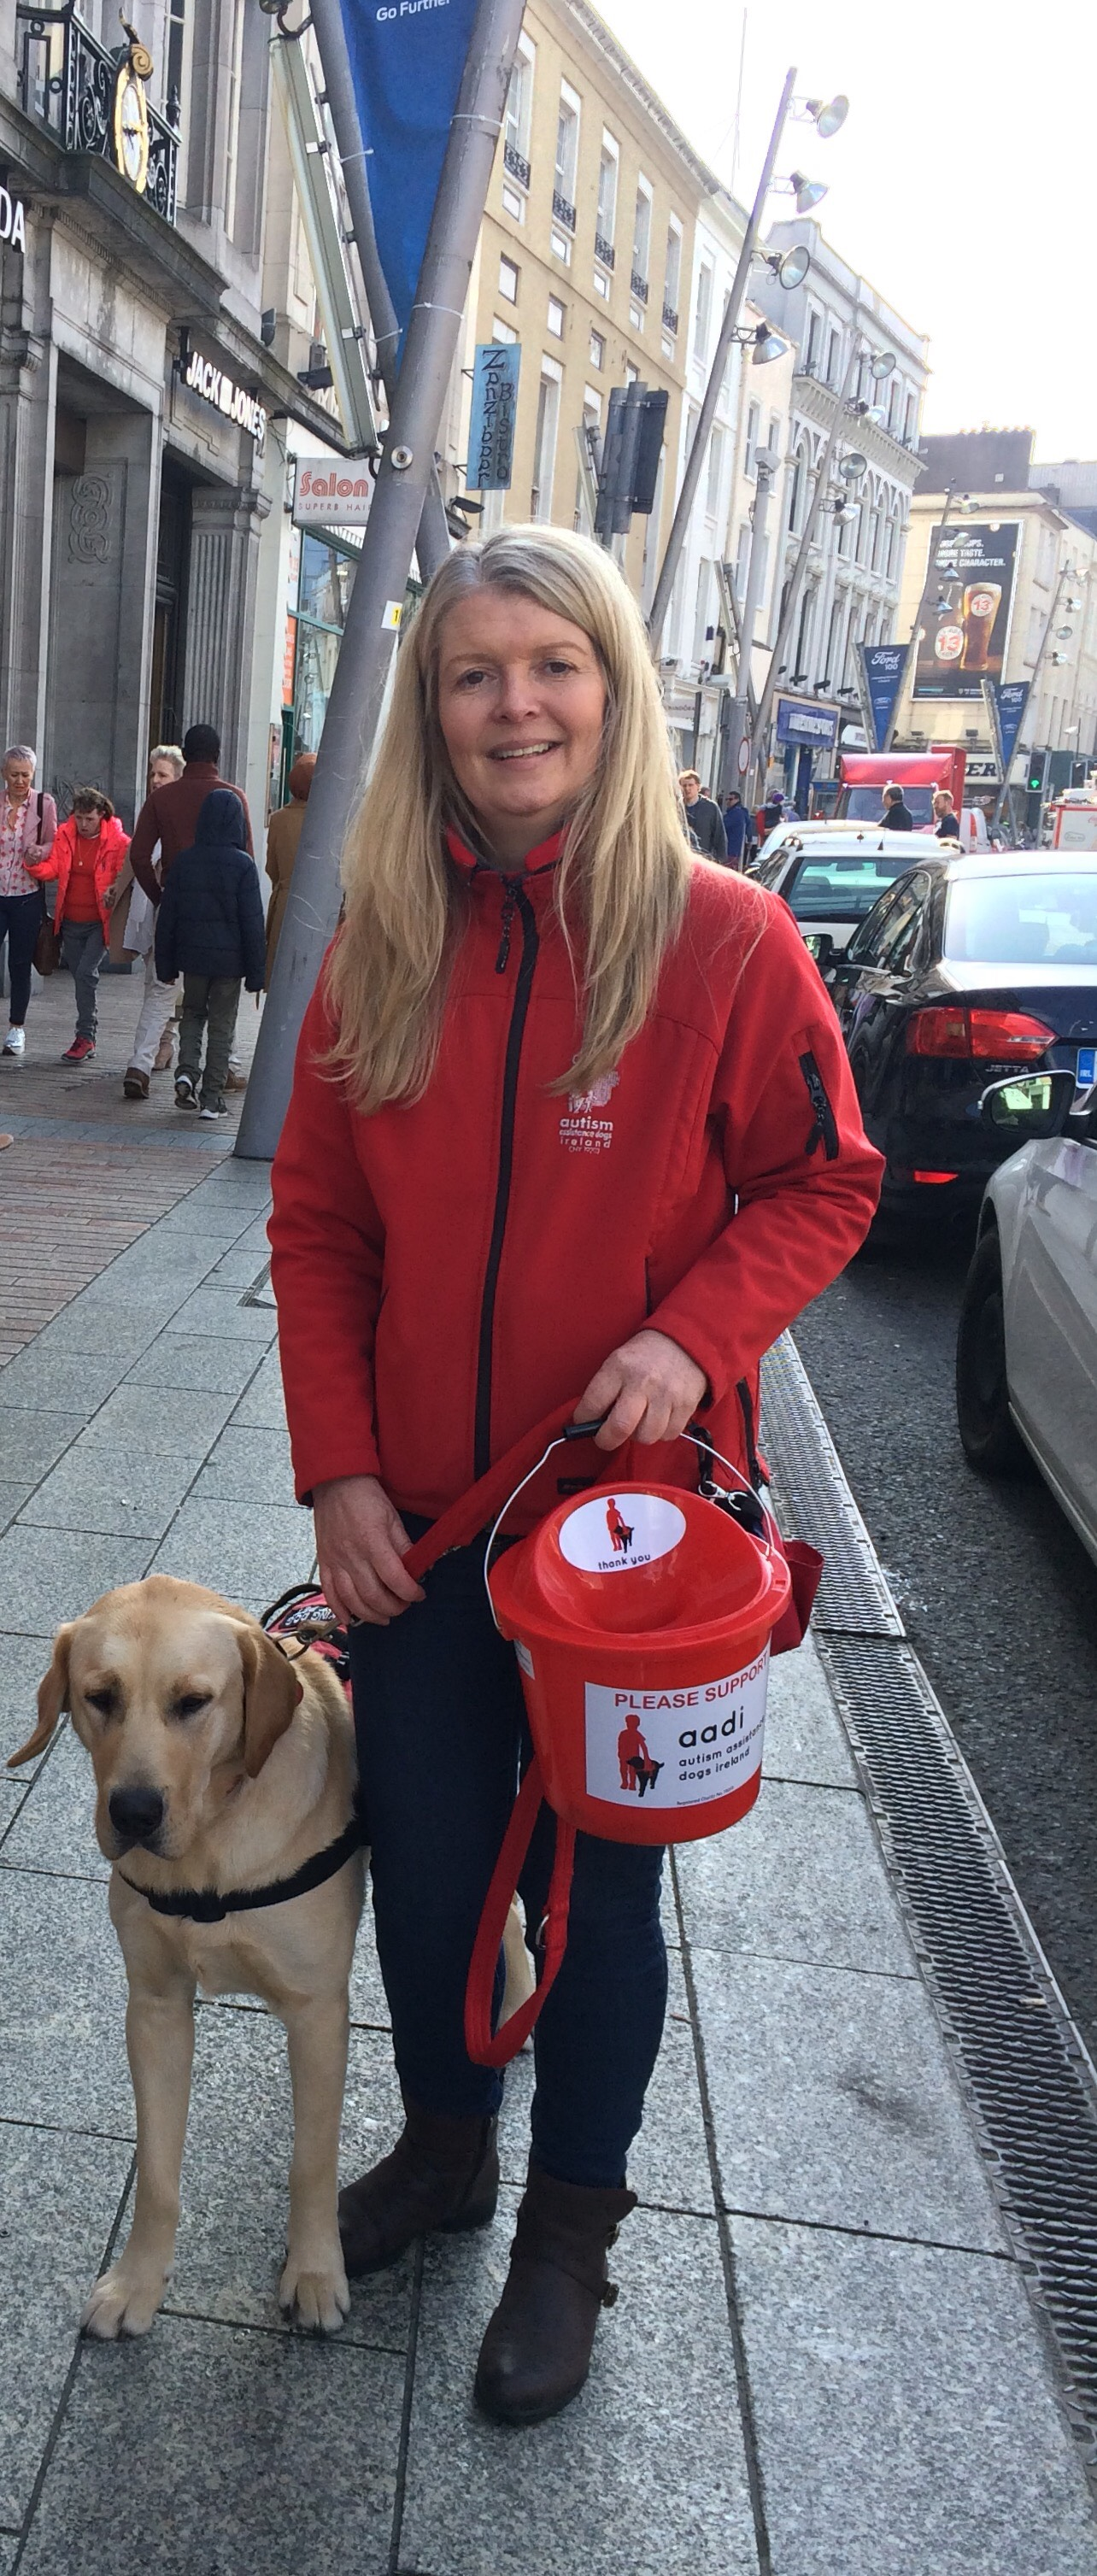 Nuala Geraghty and assistance dog Gandi